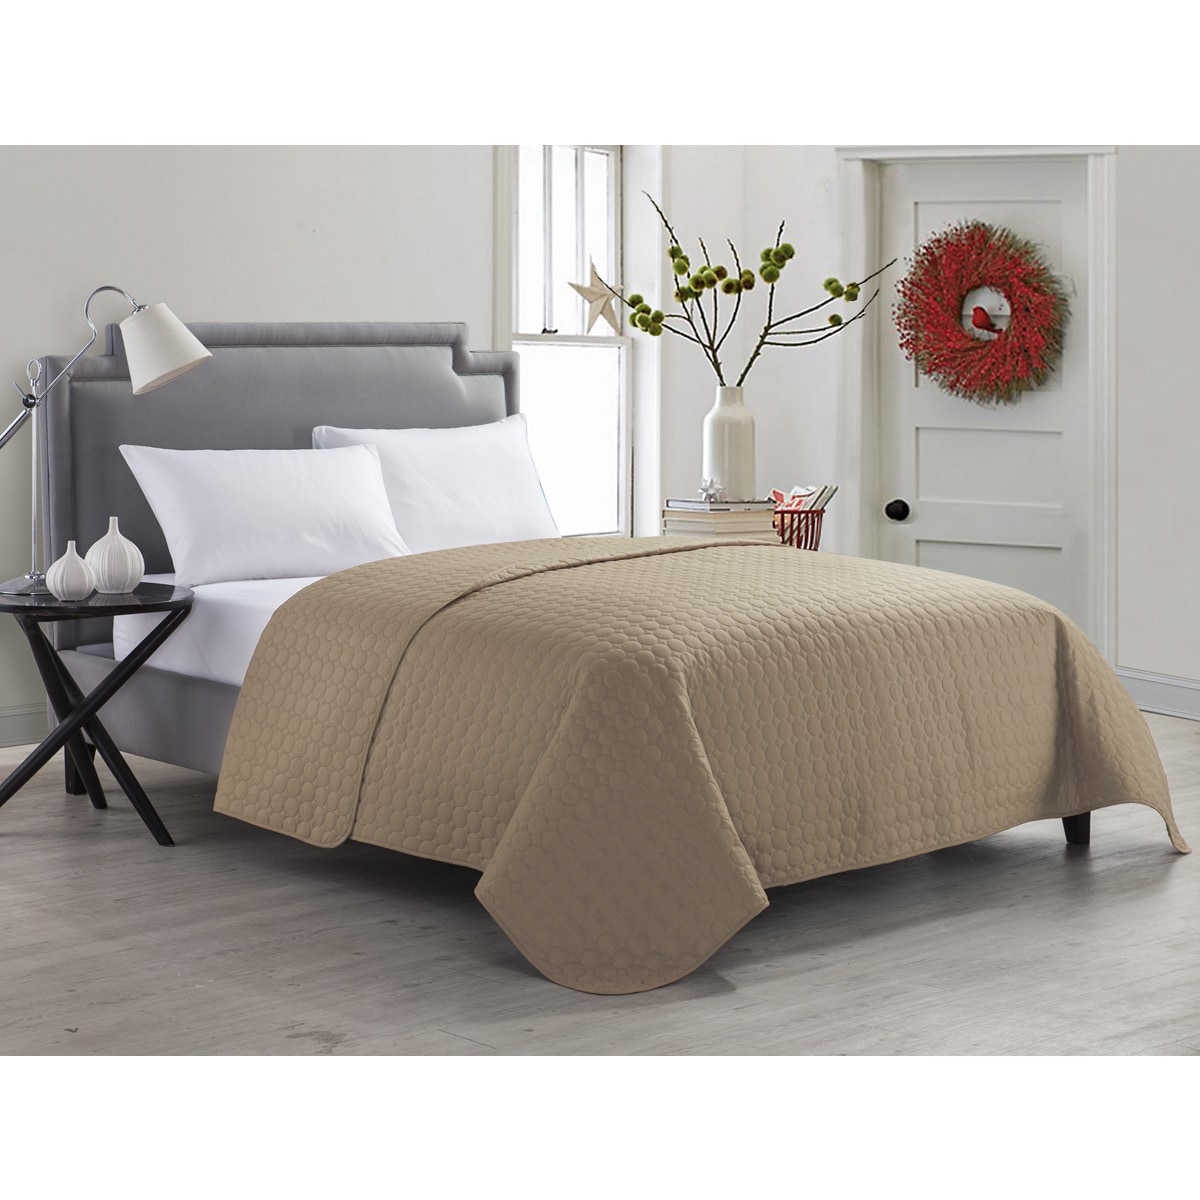 Vcny Jordan Solid Quilt (Twin-Taupe), Beige, Size King (P...